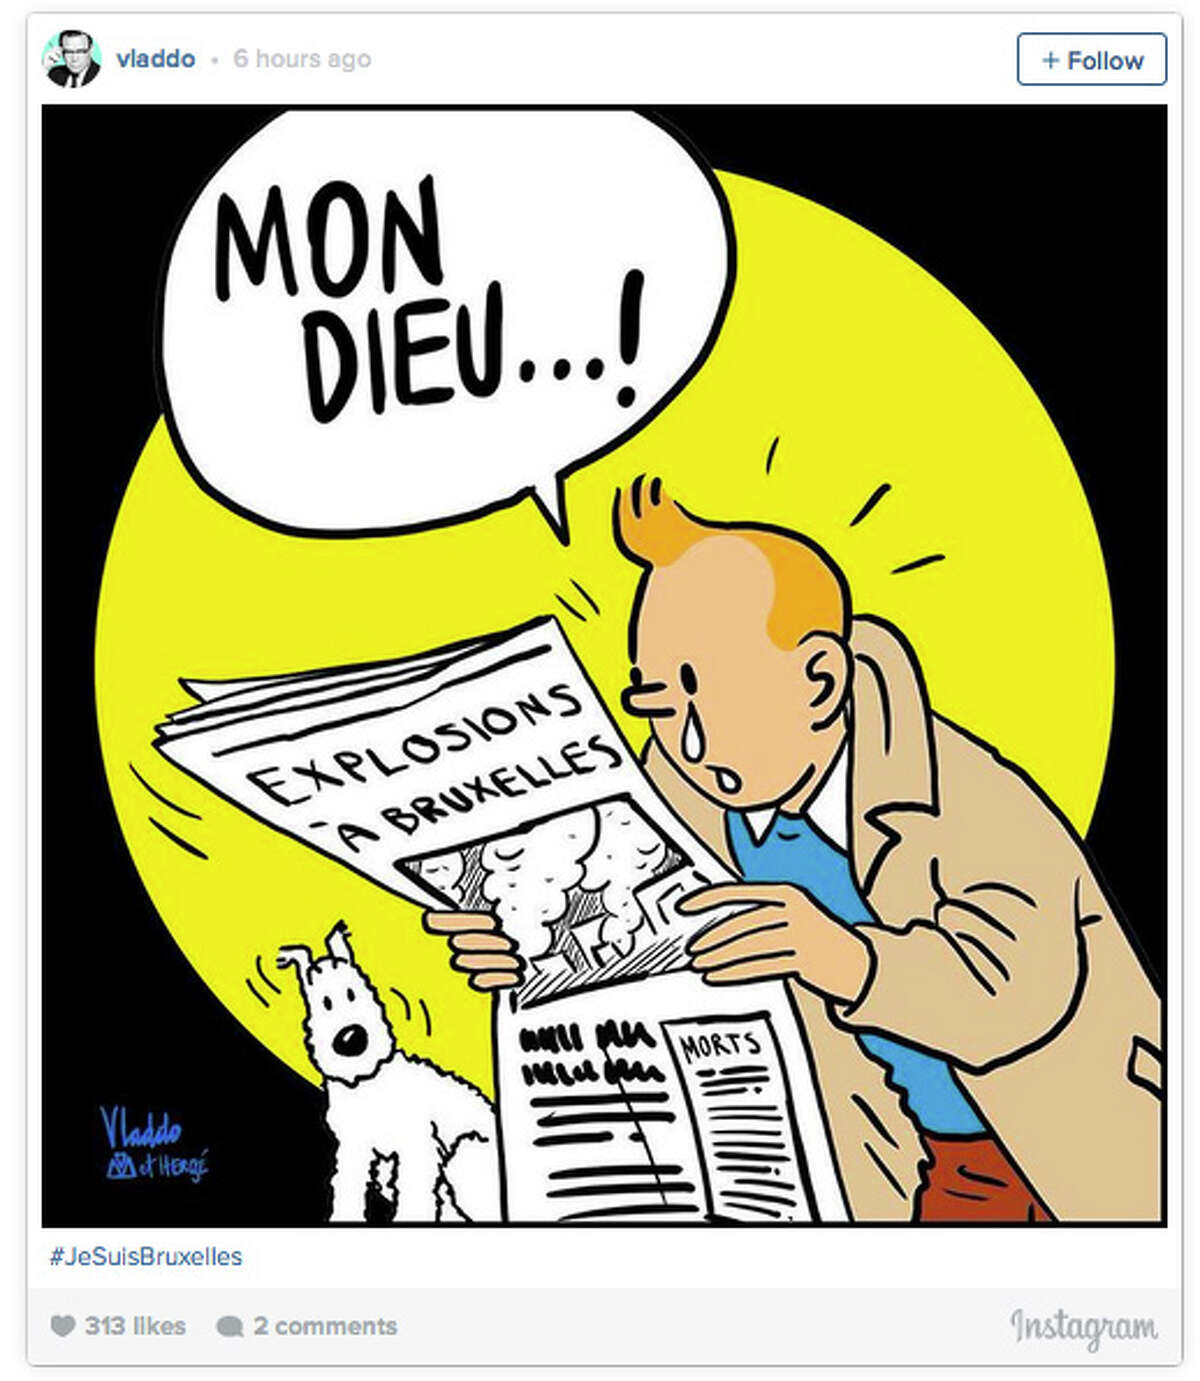 A tearful, beloved cartoon adventurer, Tintin, quickly emerged as a symbol of solidarity in the chaotic aftermath of the Brussels terror attacks,